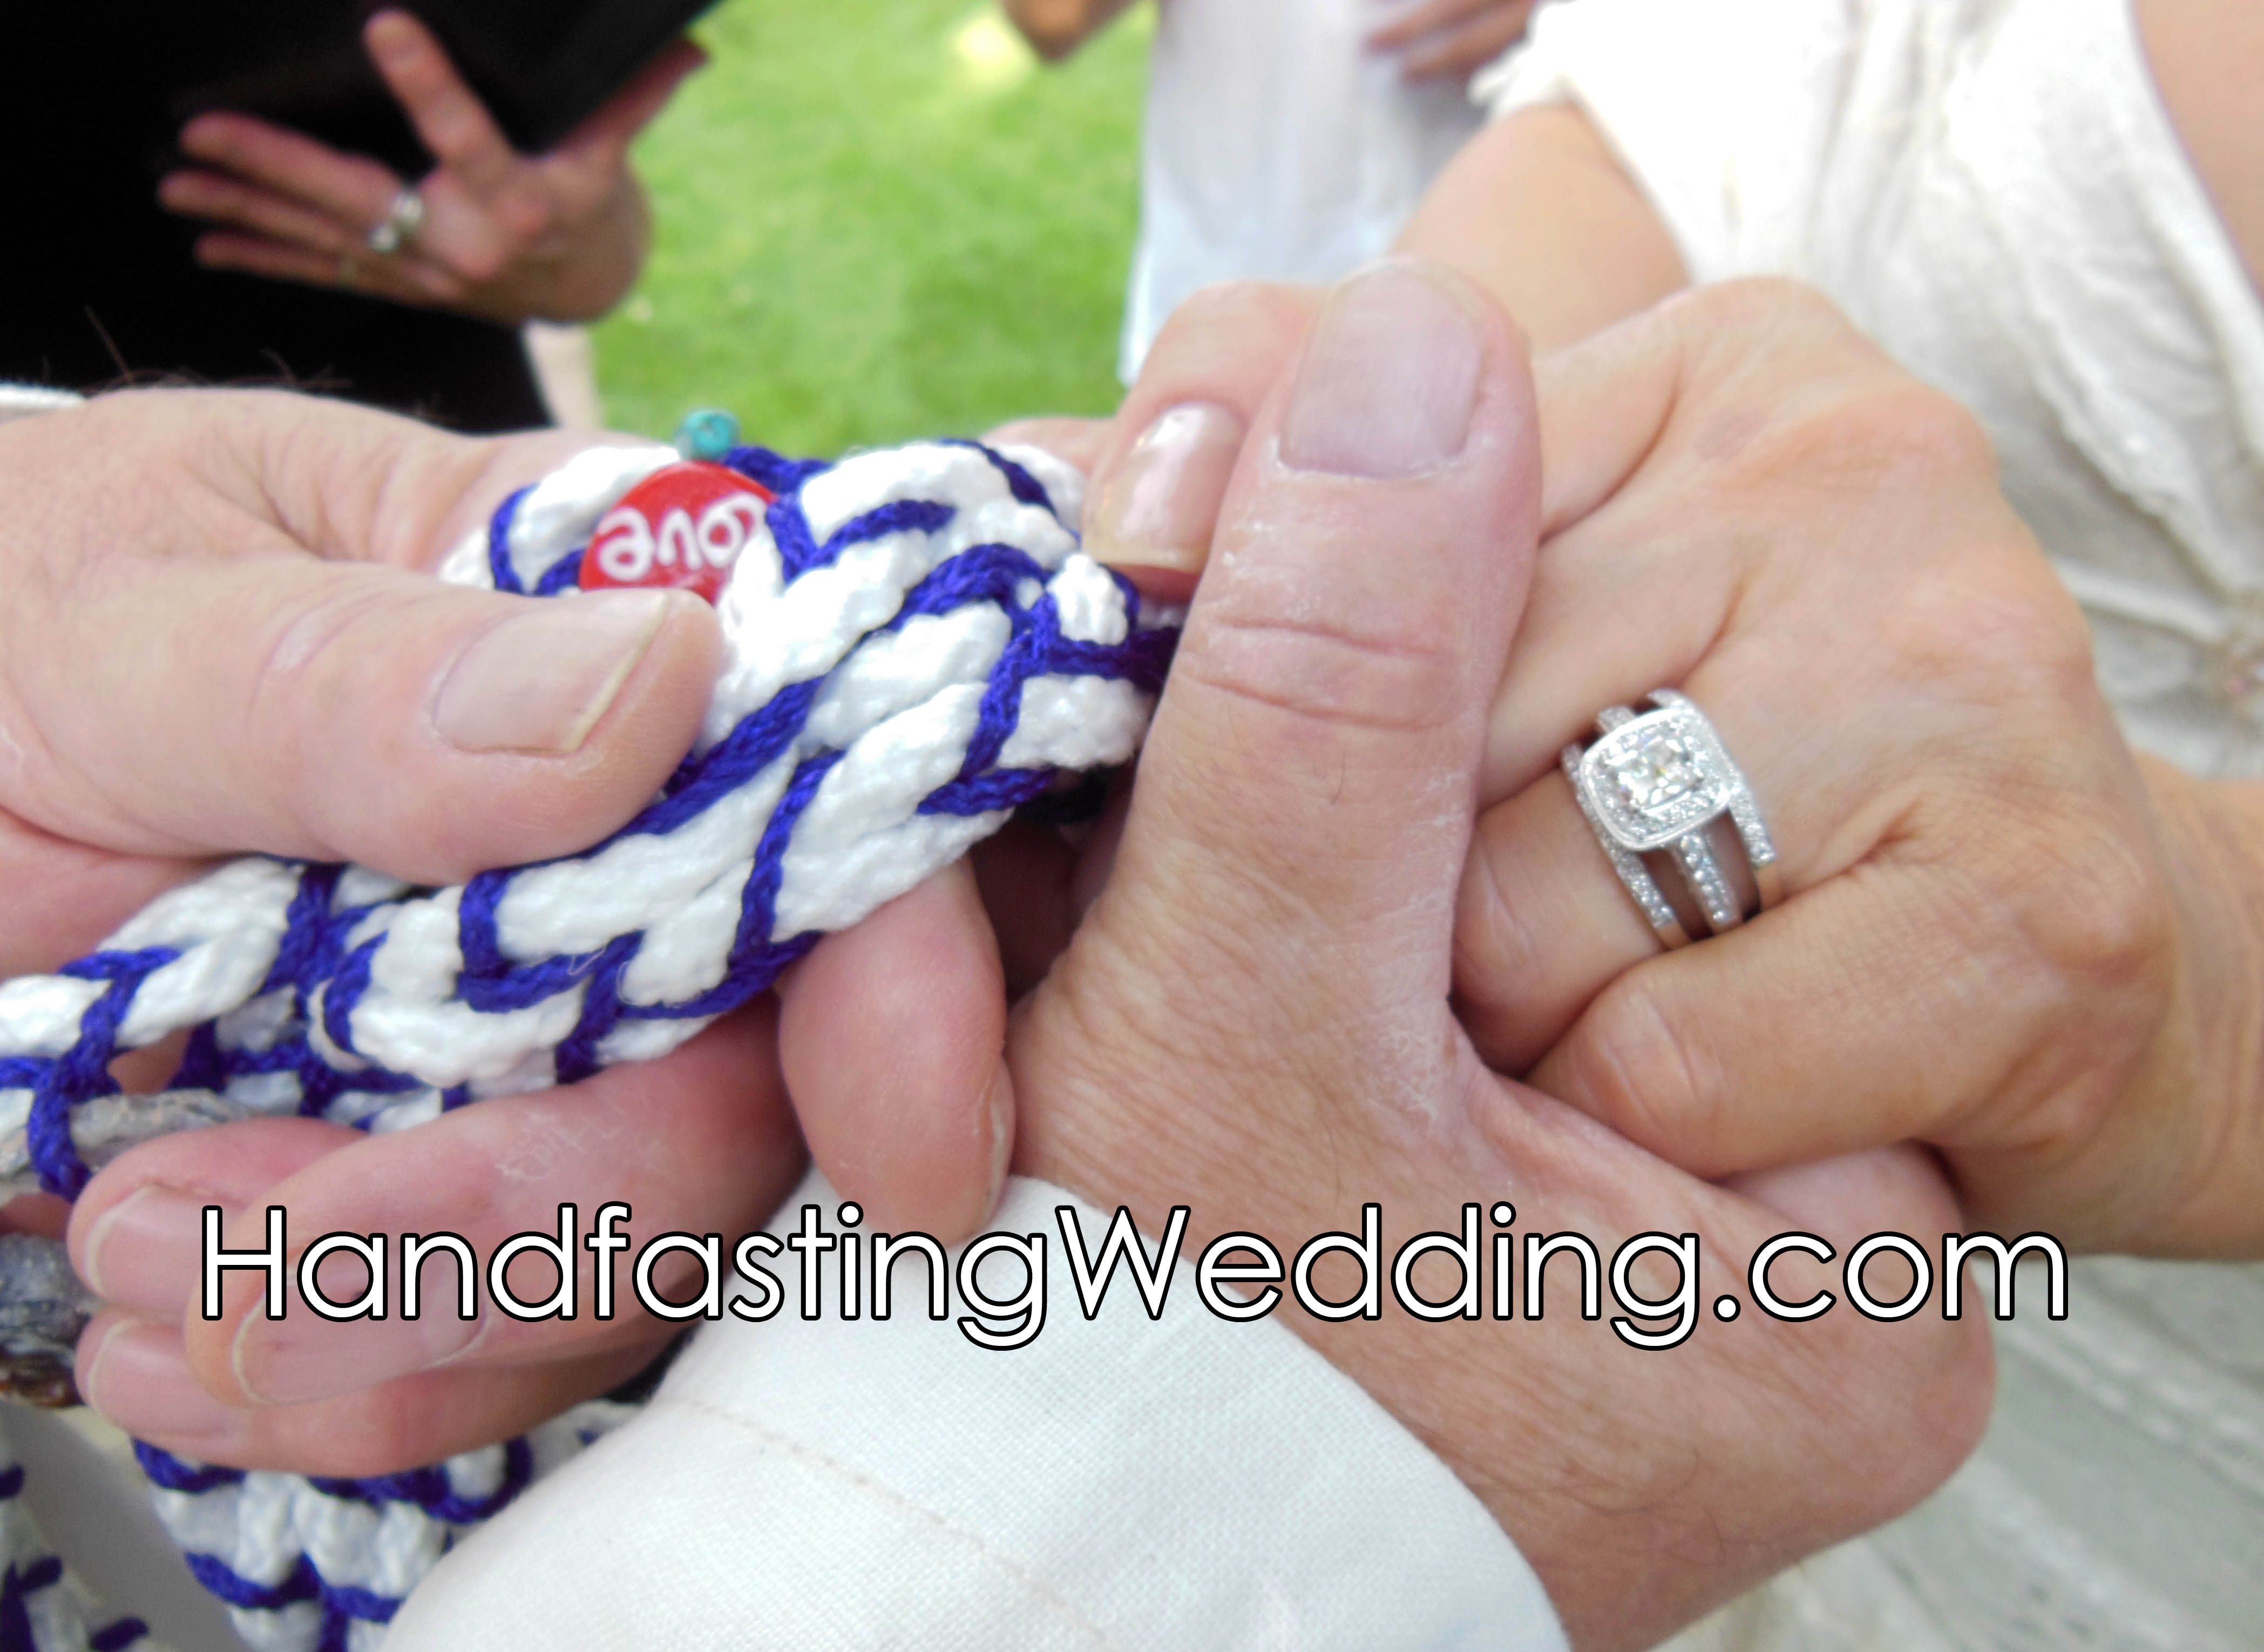 same-sex marriage is legal in Illinois.  Pine Manor is the perfect place to hold our handfasting ritual, wiccan handfasting wedding ceremony location, handfasting wedding ceremony language, how to perform a handfasting,  call CST 8-8pm to book your wedding or event at Pine Manor 847-873-7463